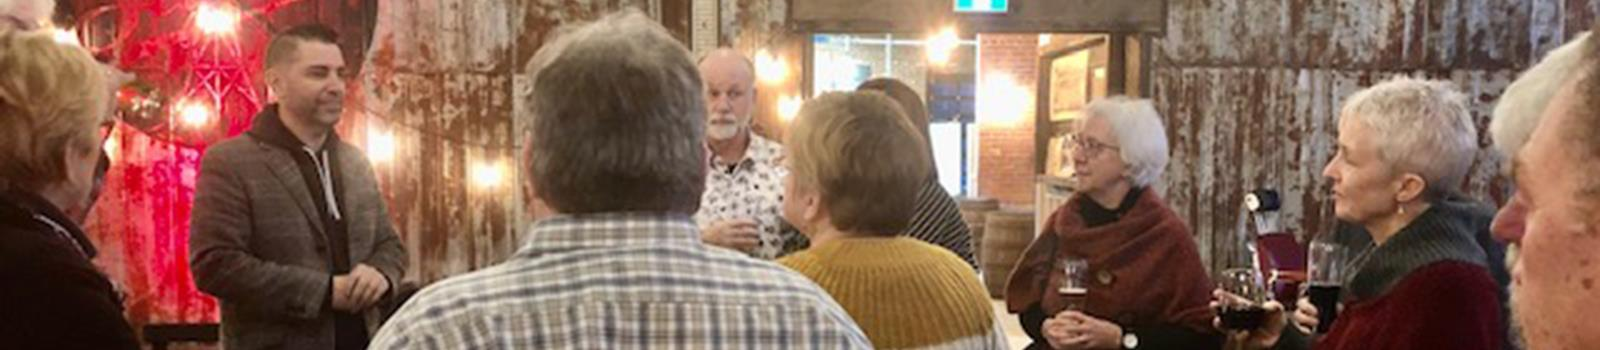 Members of the Rotary Club of Quinte Sunrise enjoy some fellowship